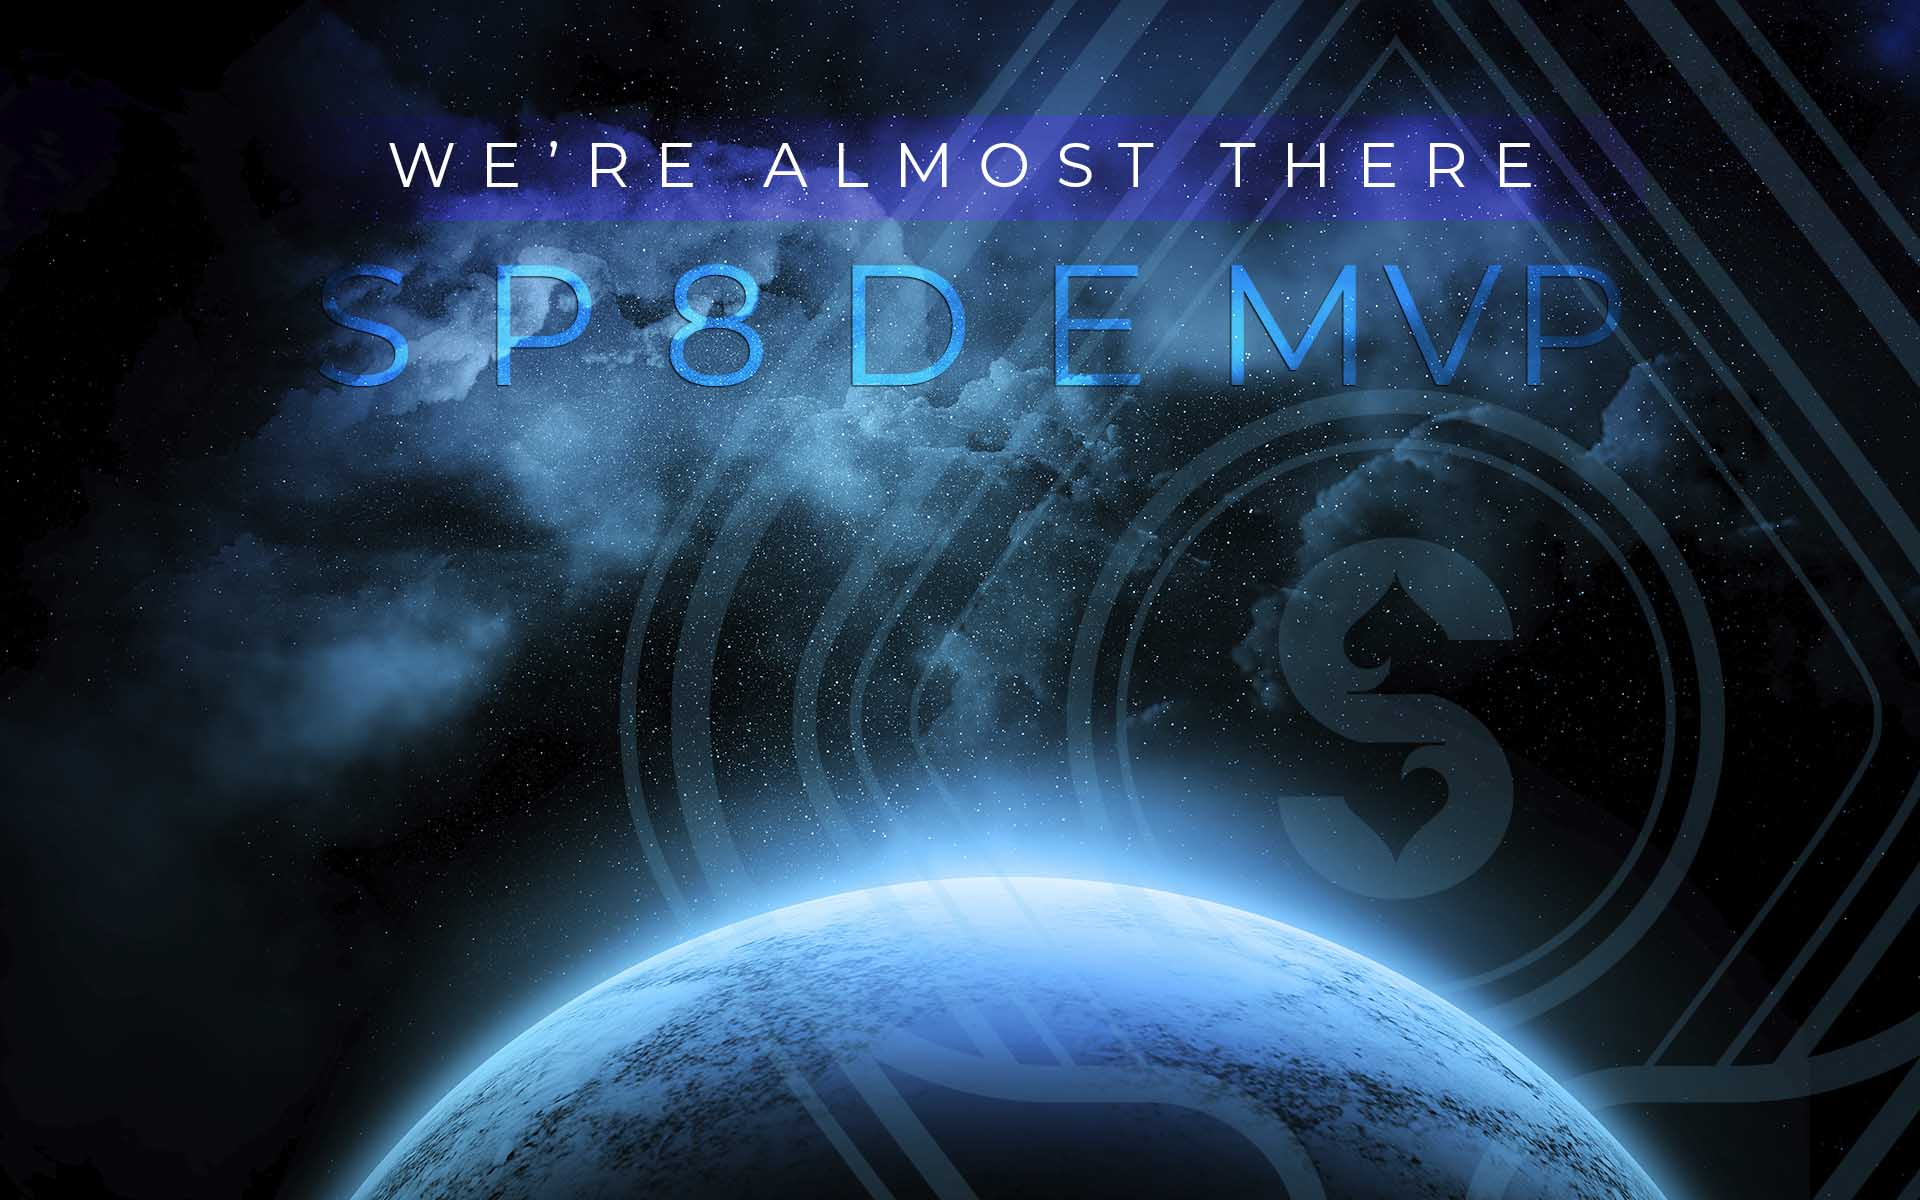 Greetings Earth. The SP8DE Spaceship Is Running Ahead of the Plan.